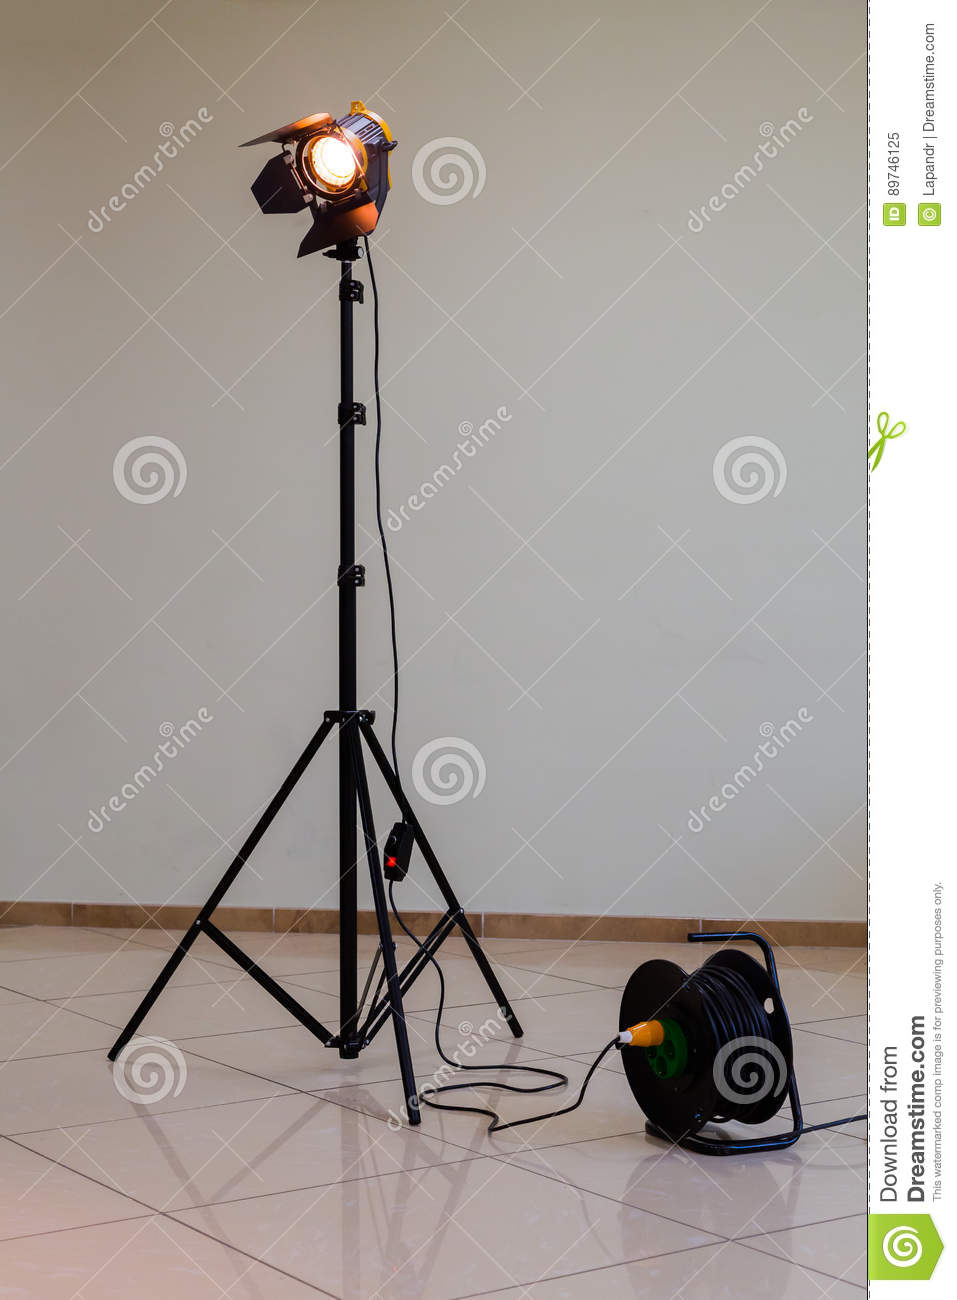 Download Spotlight With Halogen Bulb And Fresnel Lens. Lighting Equipment For Studio Photography Or Videography & Spotlight With Halogen Bulb And Fresnel Lens. Lighting Equipment For ...